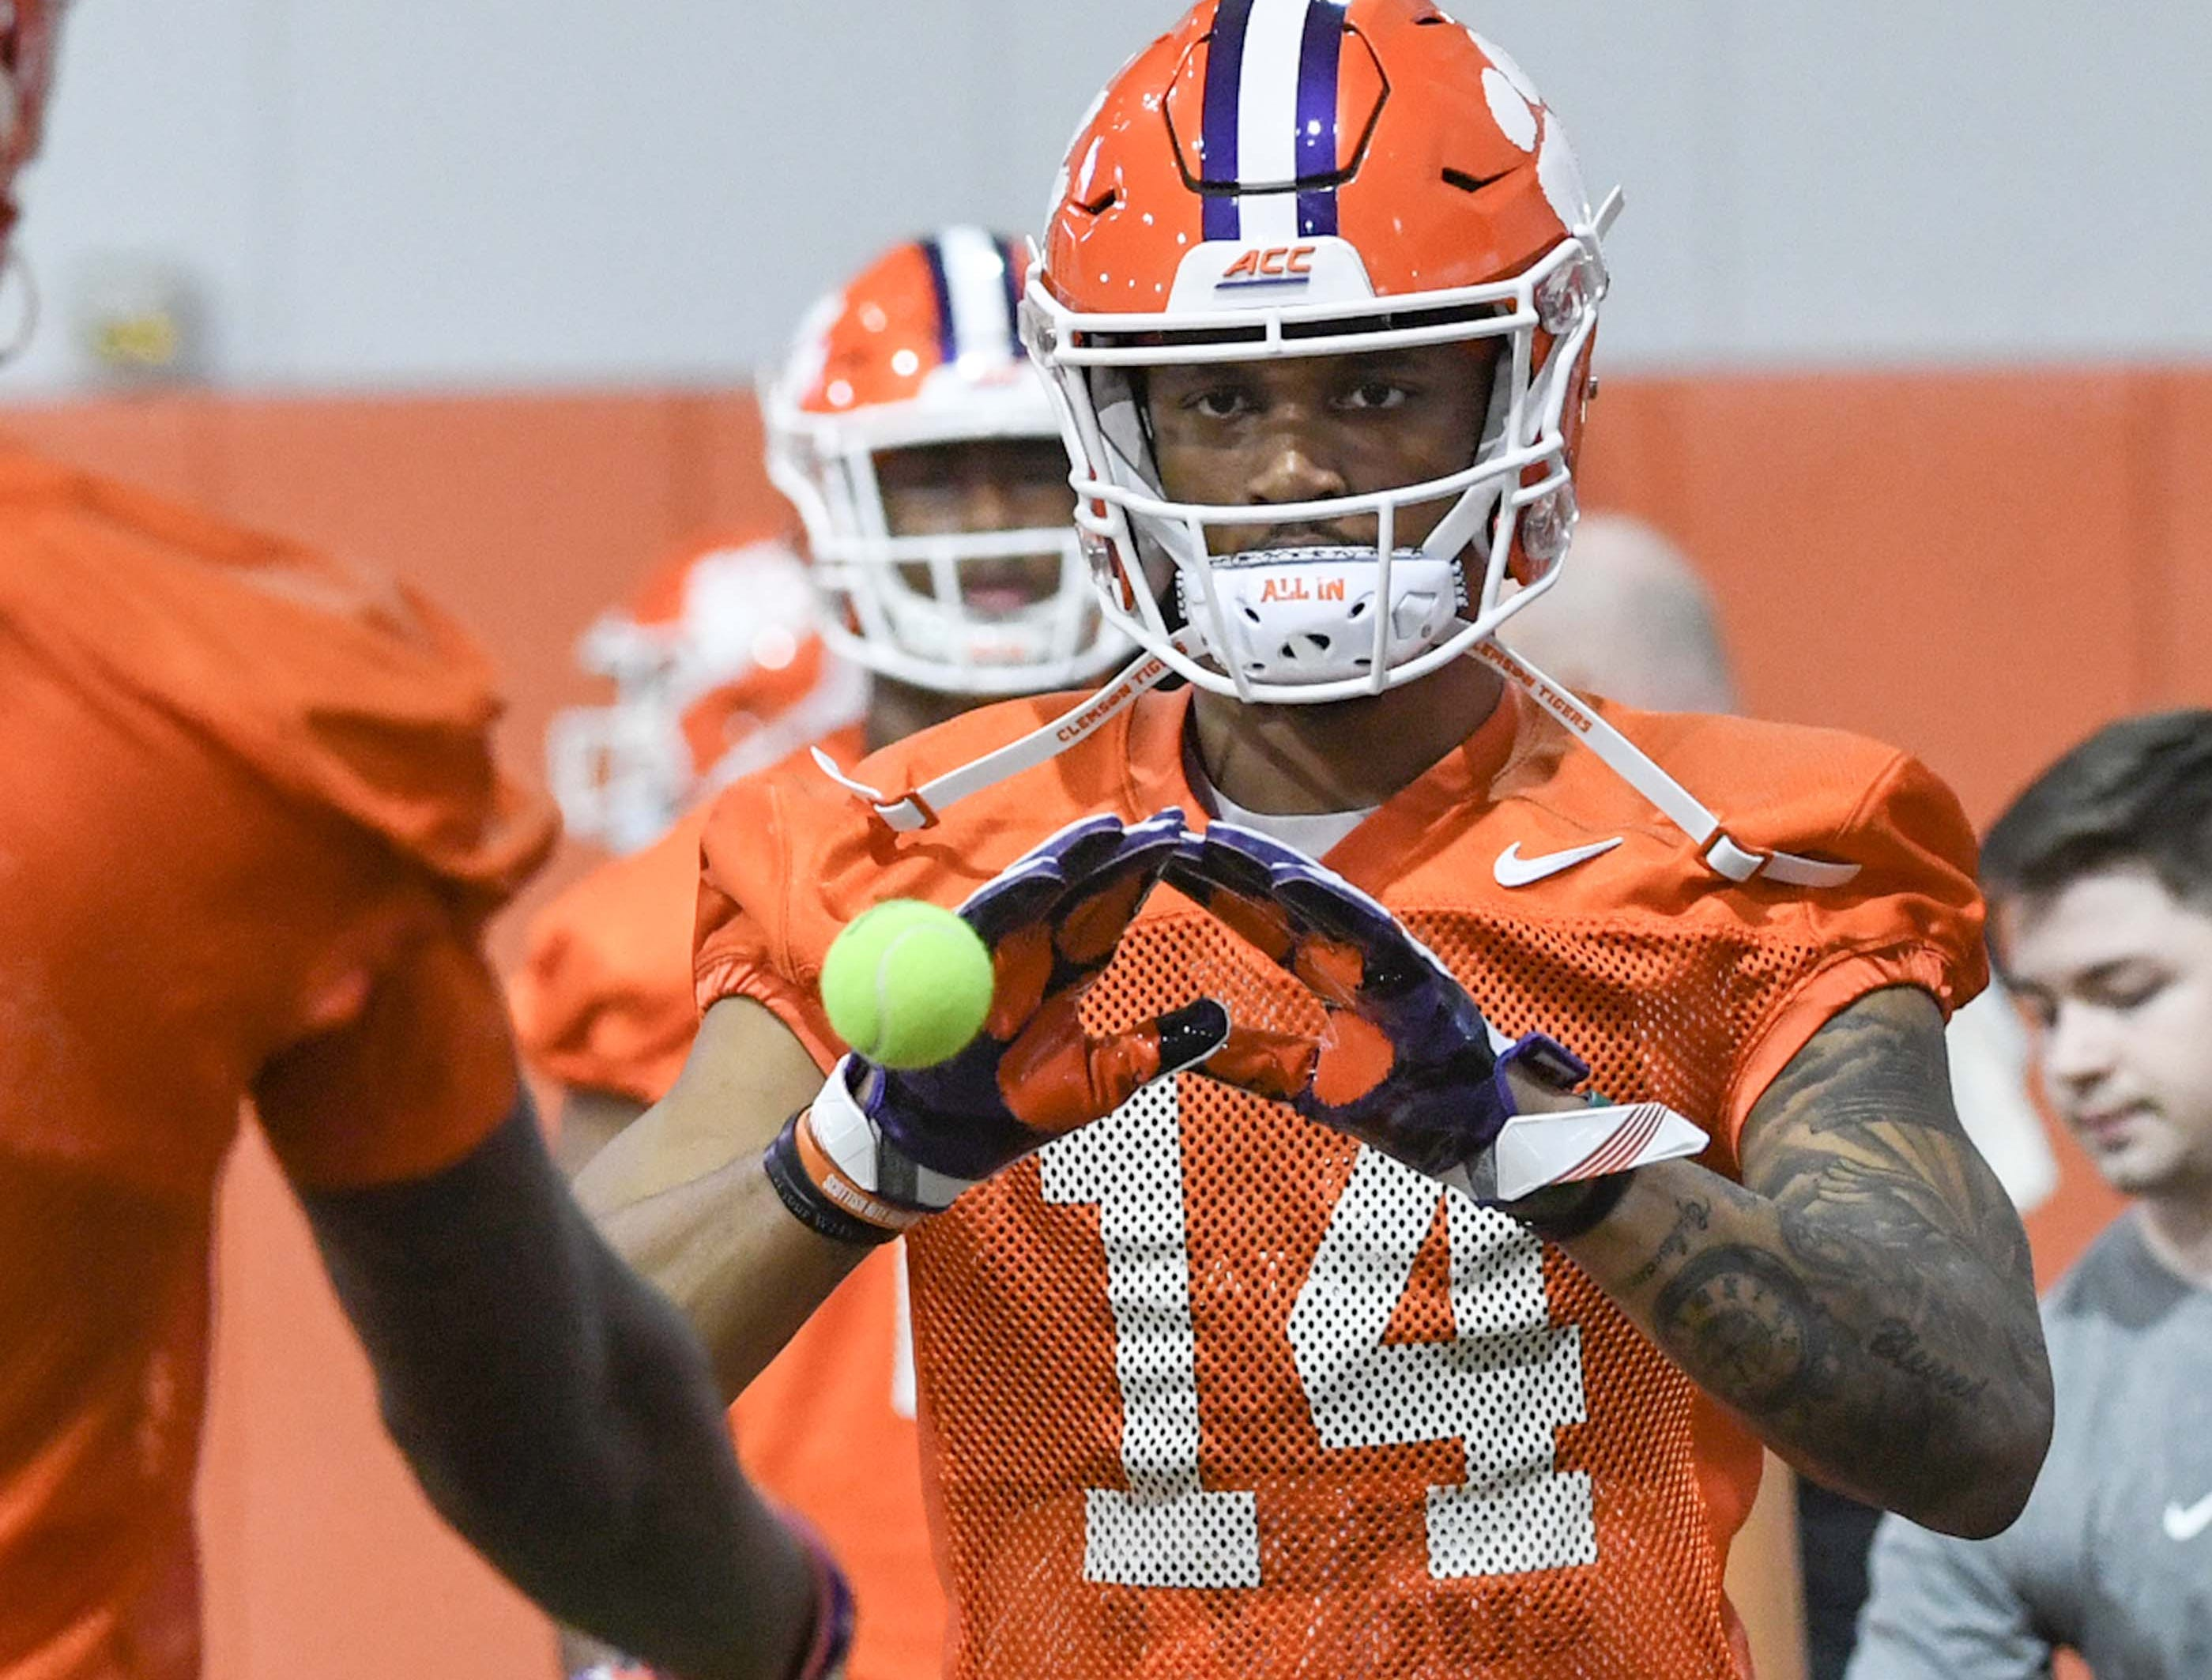 Clemson wide receiver Diondre Overton (14) catches a tennis ball in a drill during practice at the Poe Indoor Facility in Clemson Friday.